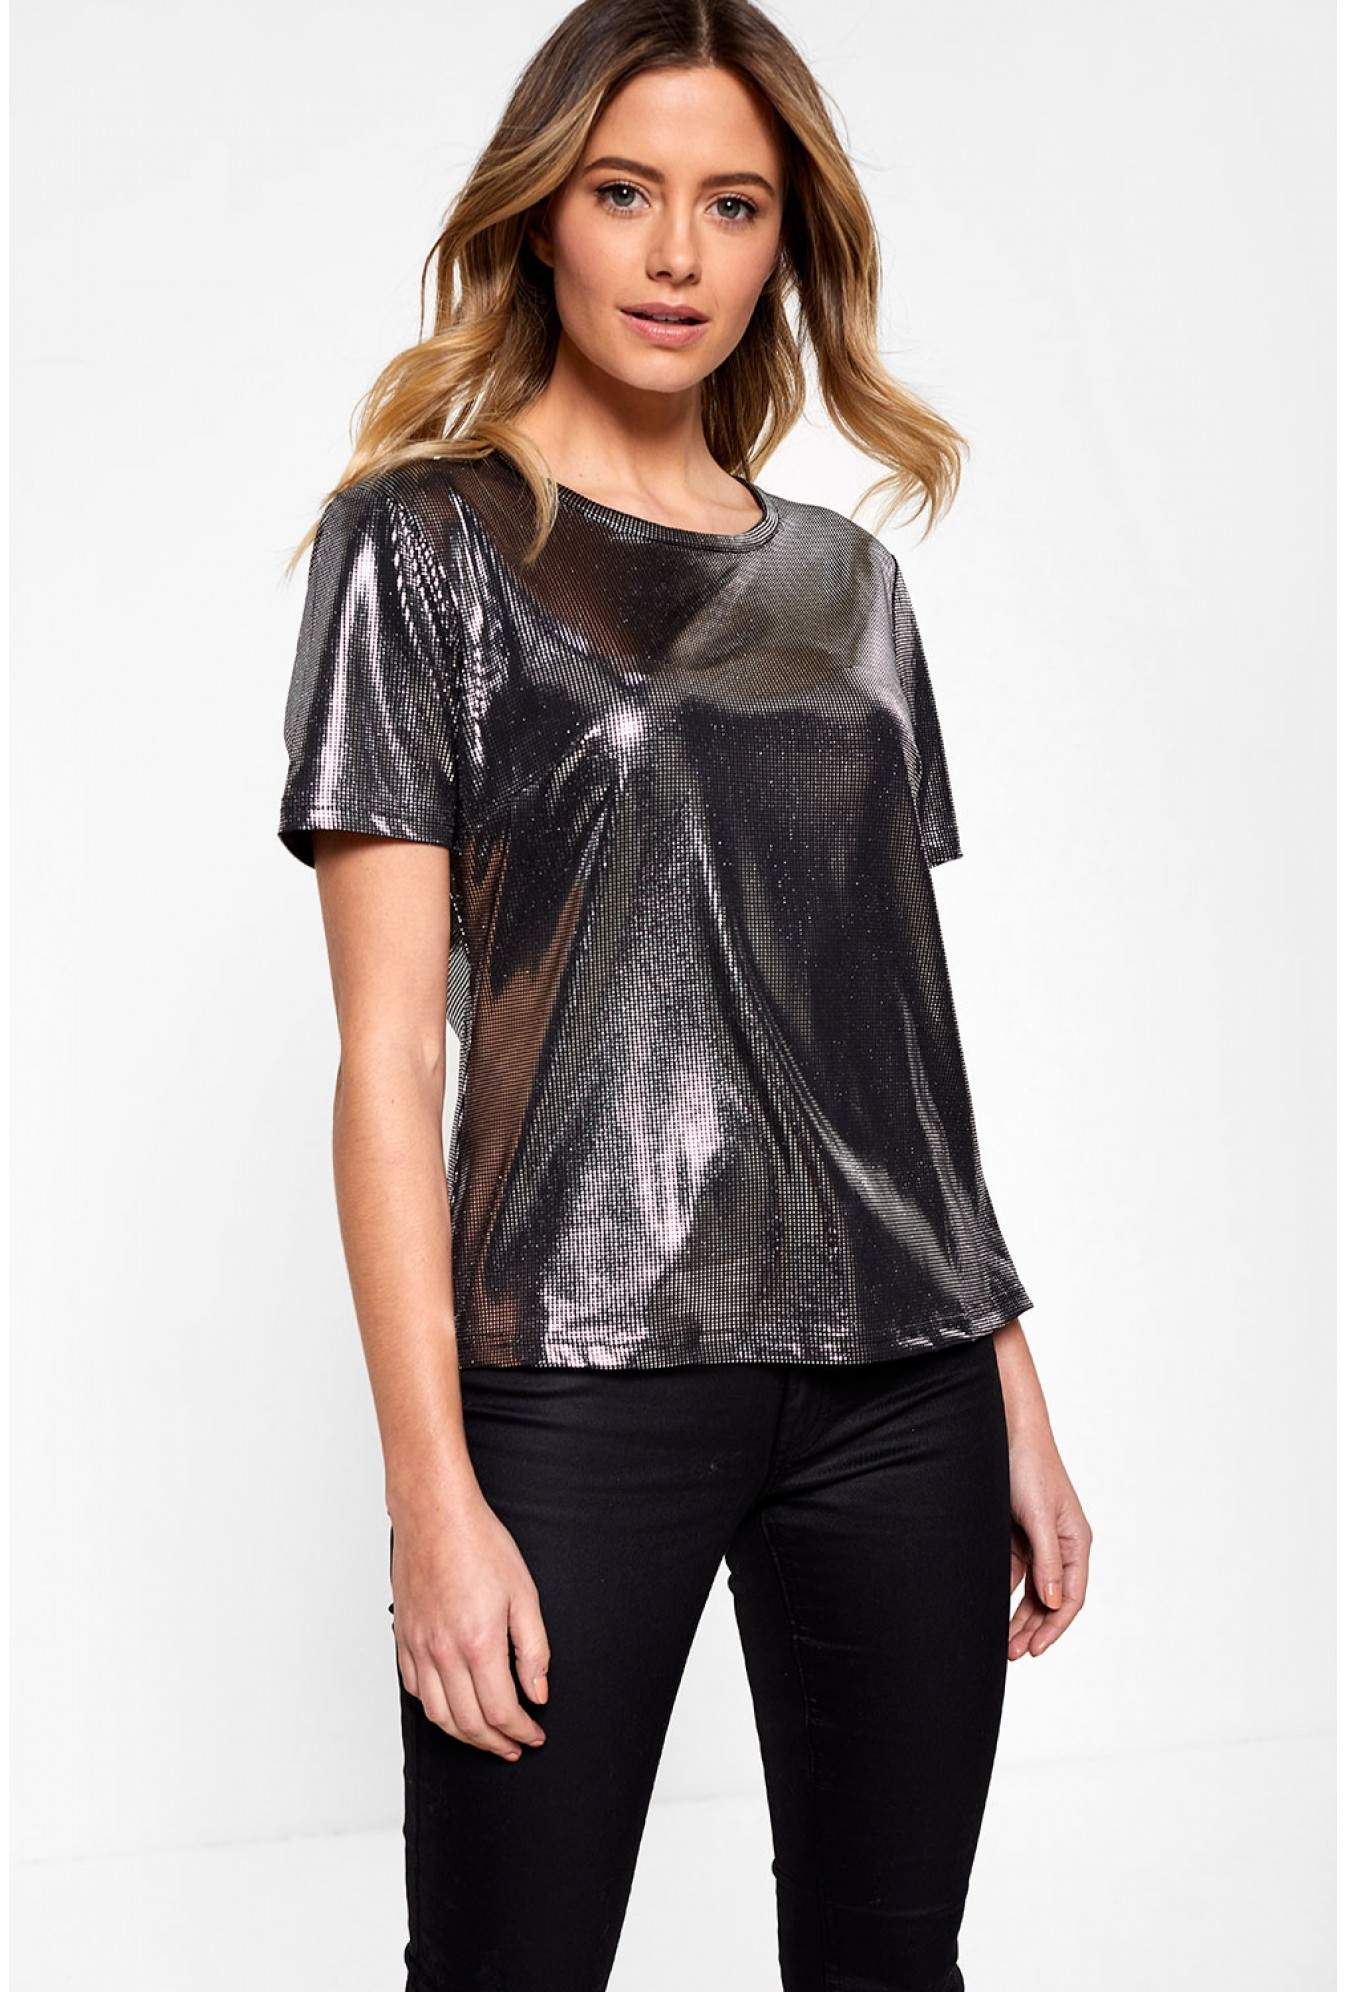 e99ae2ab461d Marc Angelo Lana Short Sleeve Top in Metallic Silver | iCLOTHING